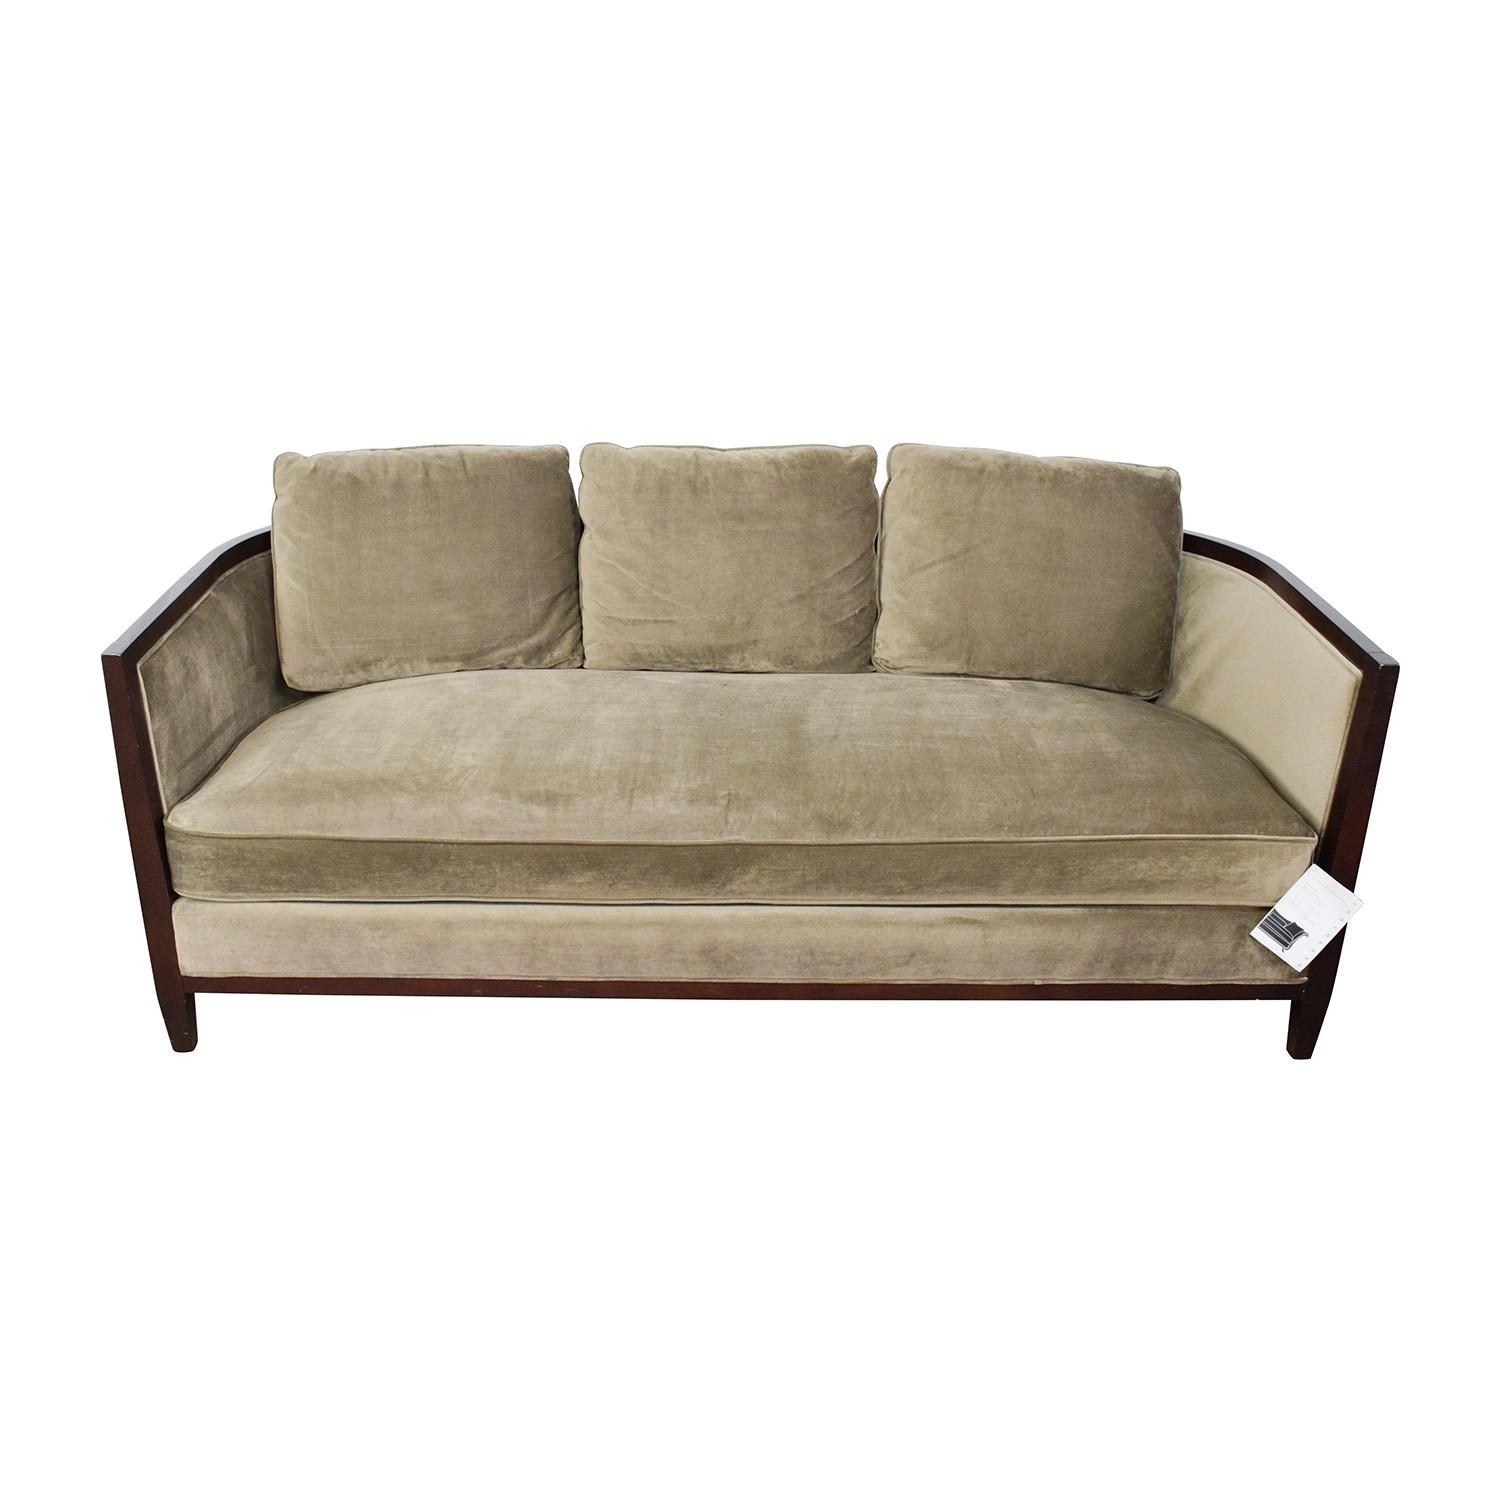 One Cushion Sofas Sale | Cushions Decoration Intended For One Cushion Sofas (Image 12 of 20)